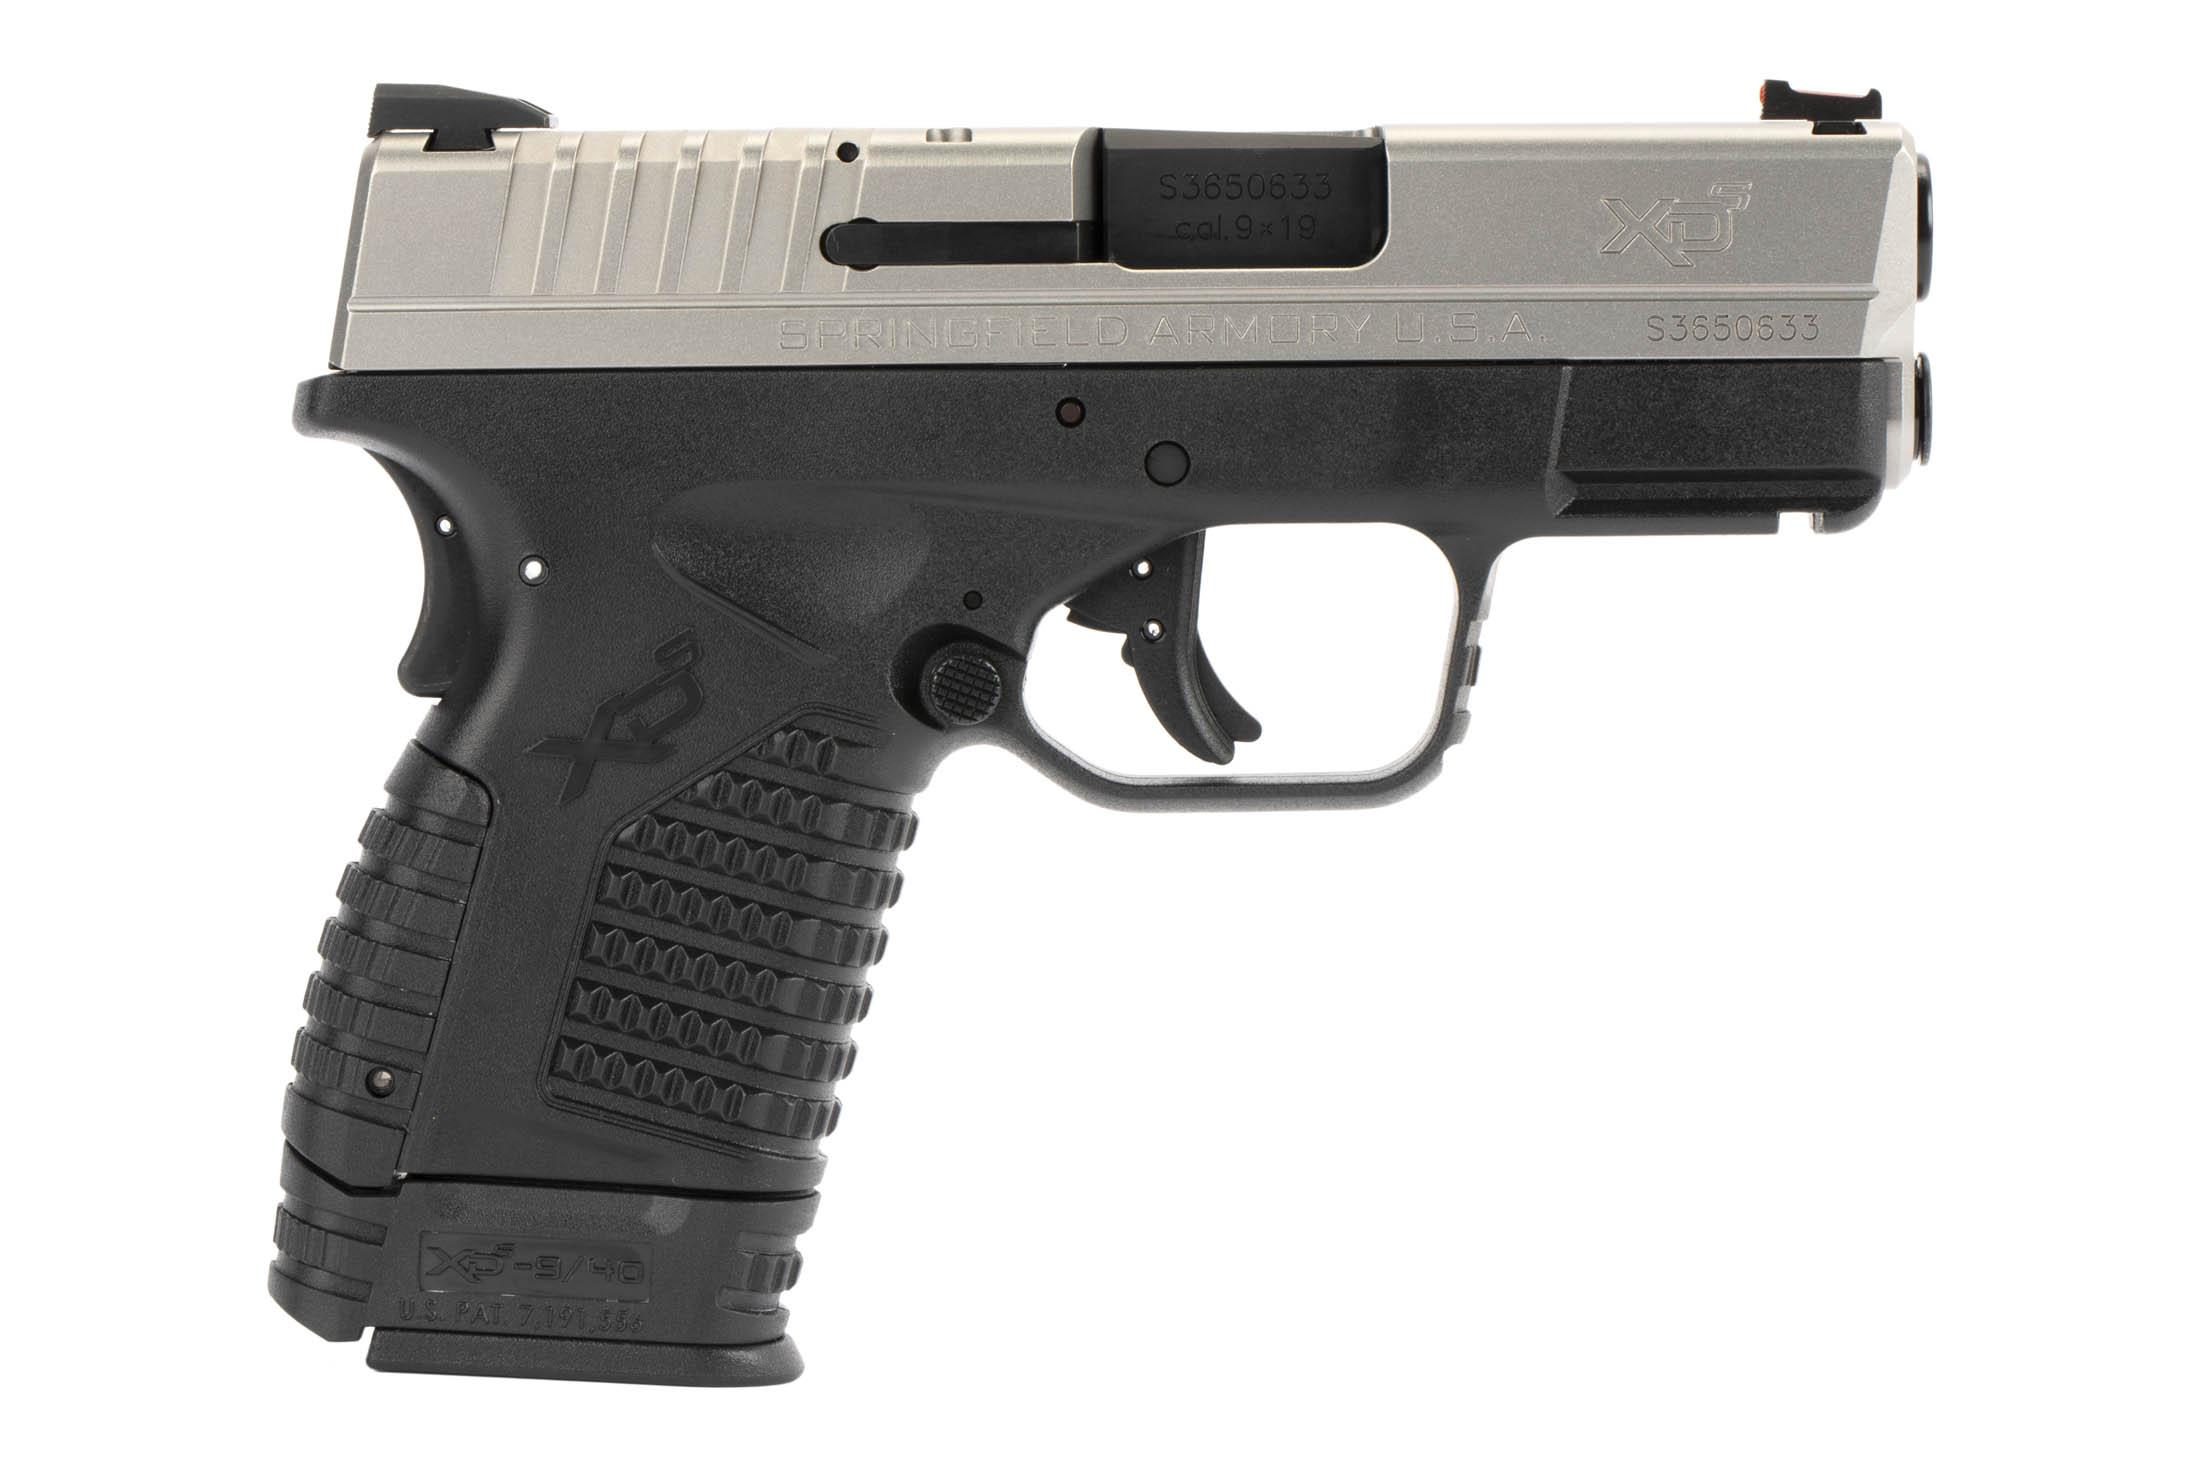 The Springfield Armory XD-S is a 9mm Sub Compact 8 round Handgun with fully ambidextrous controls